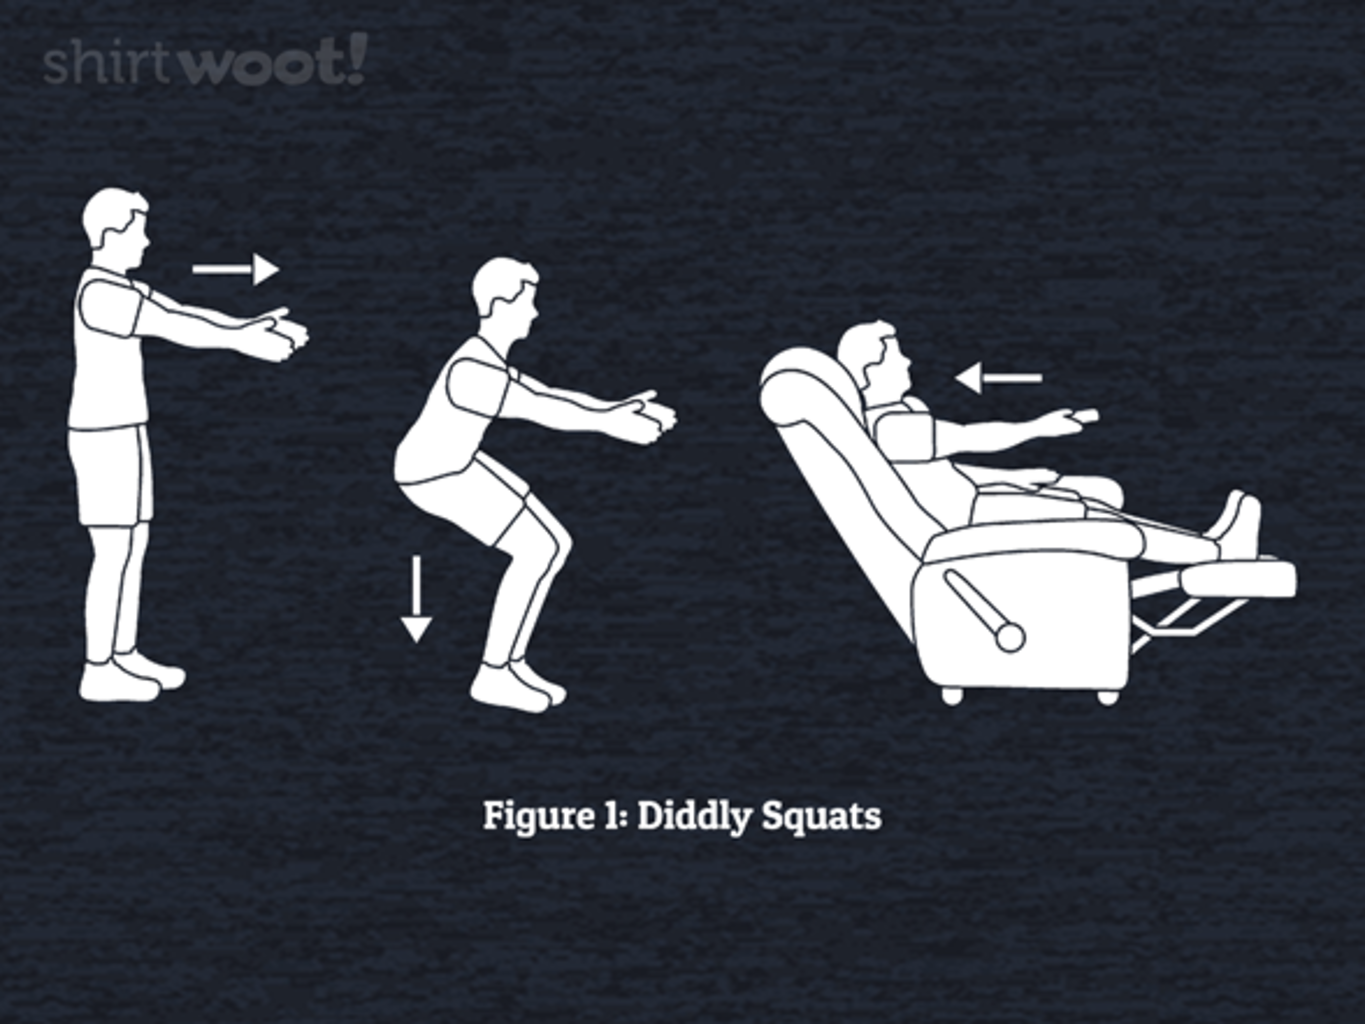 Woot!: Diddly Squats